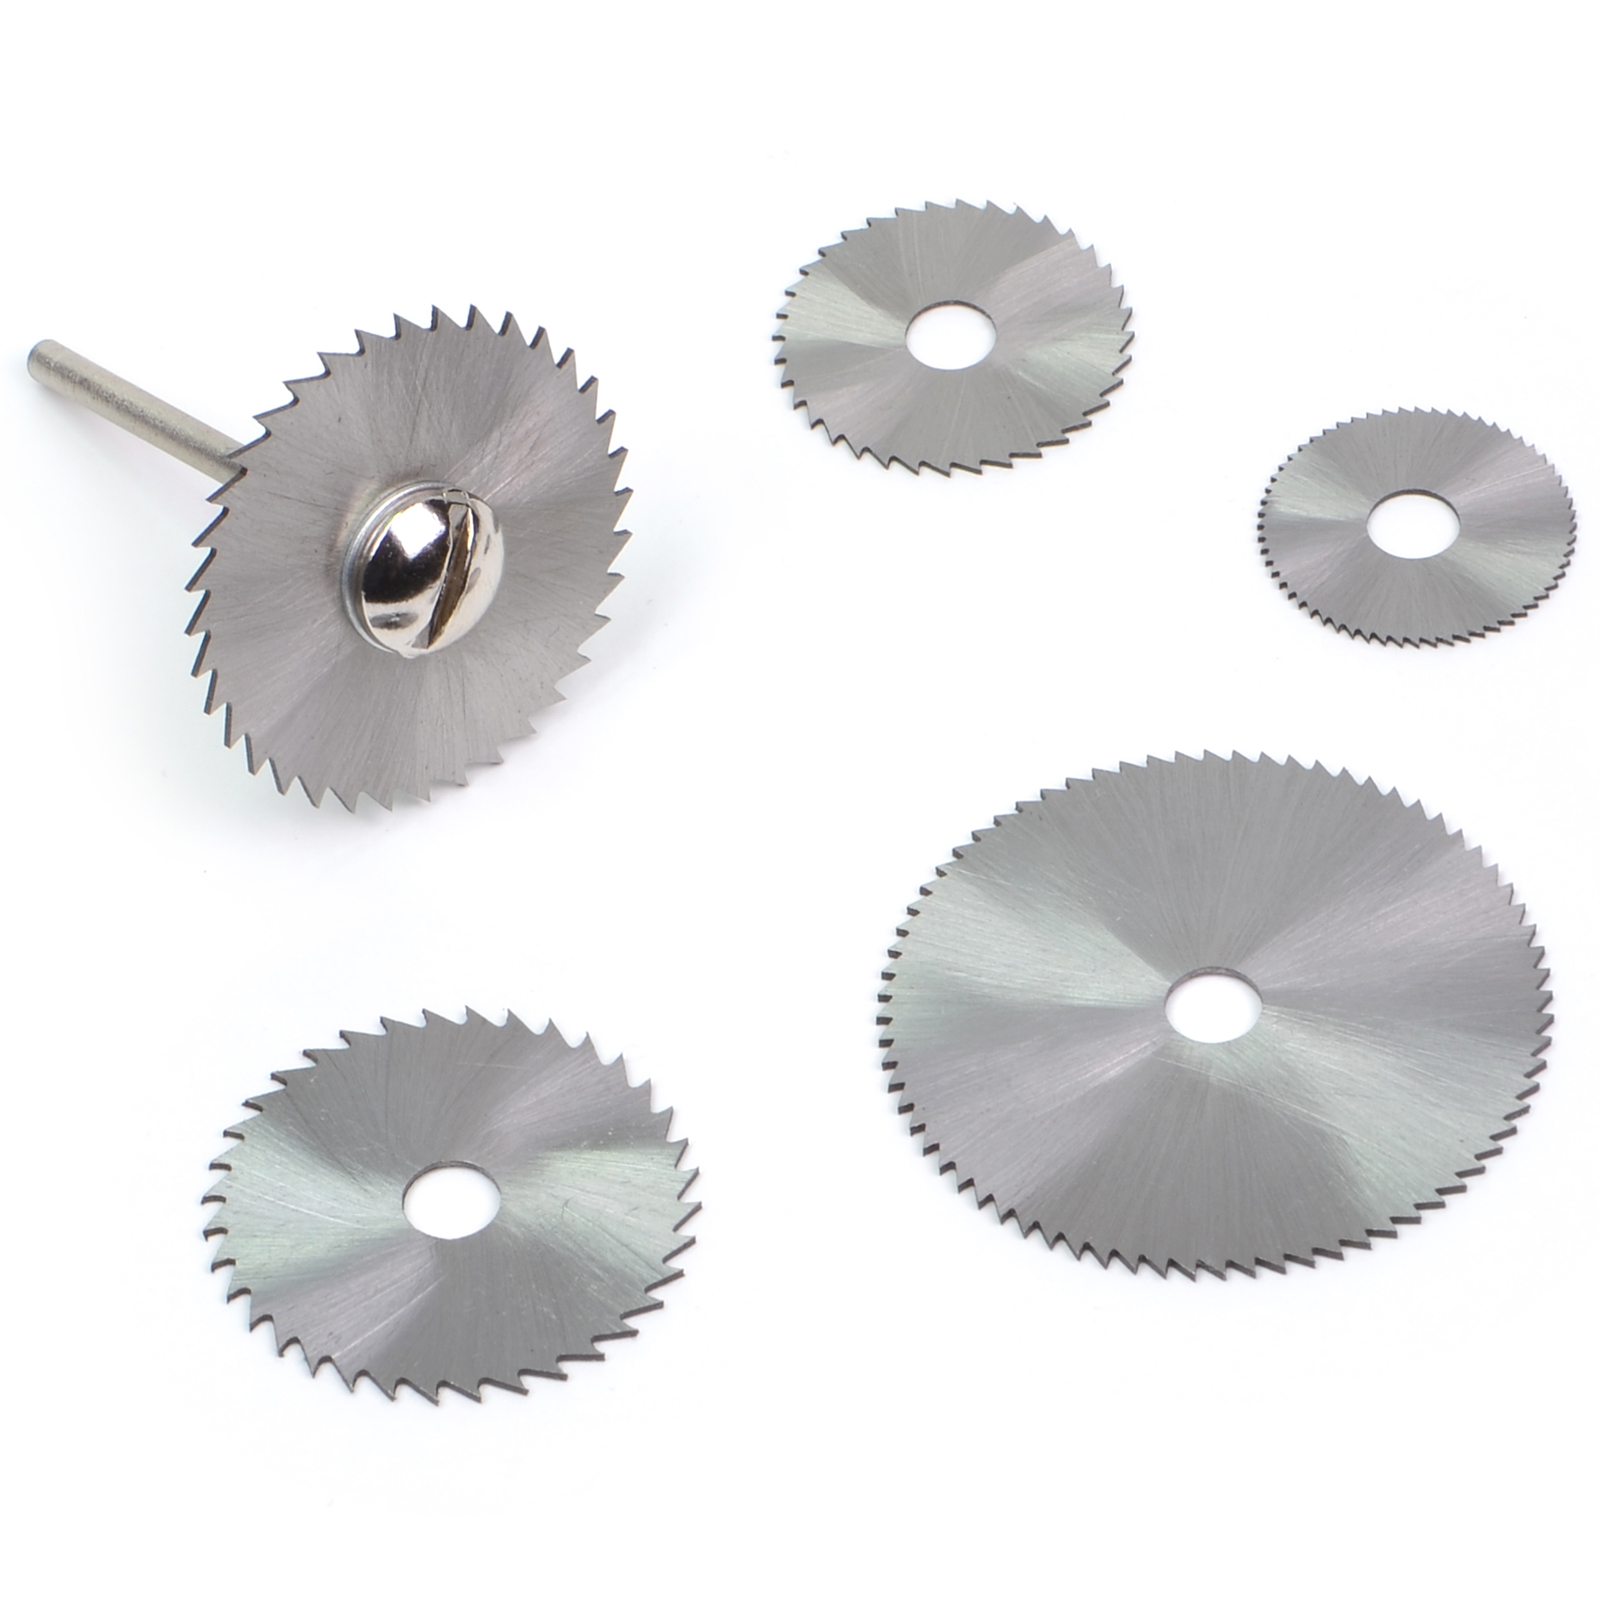 6-piece High Speed Steel Saw Blade